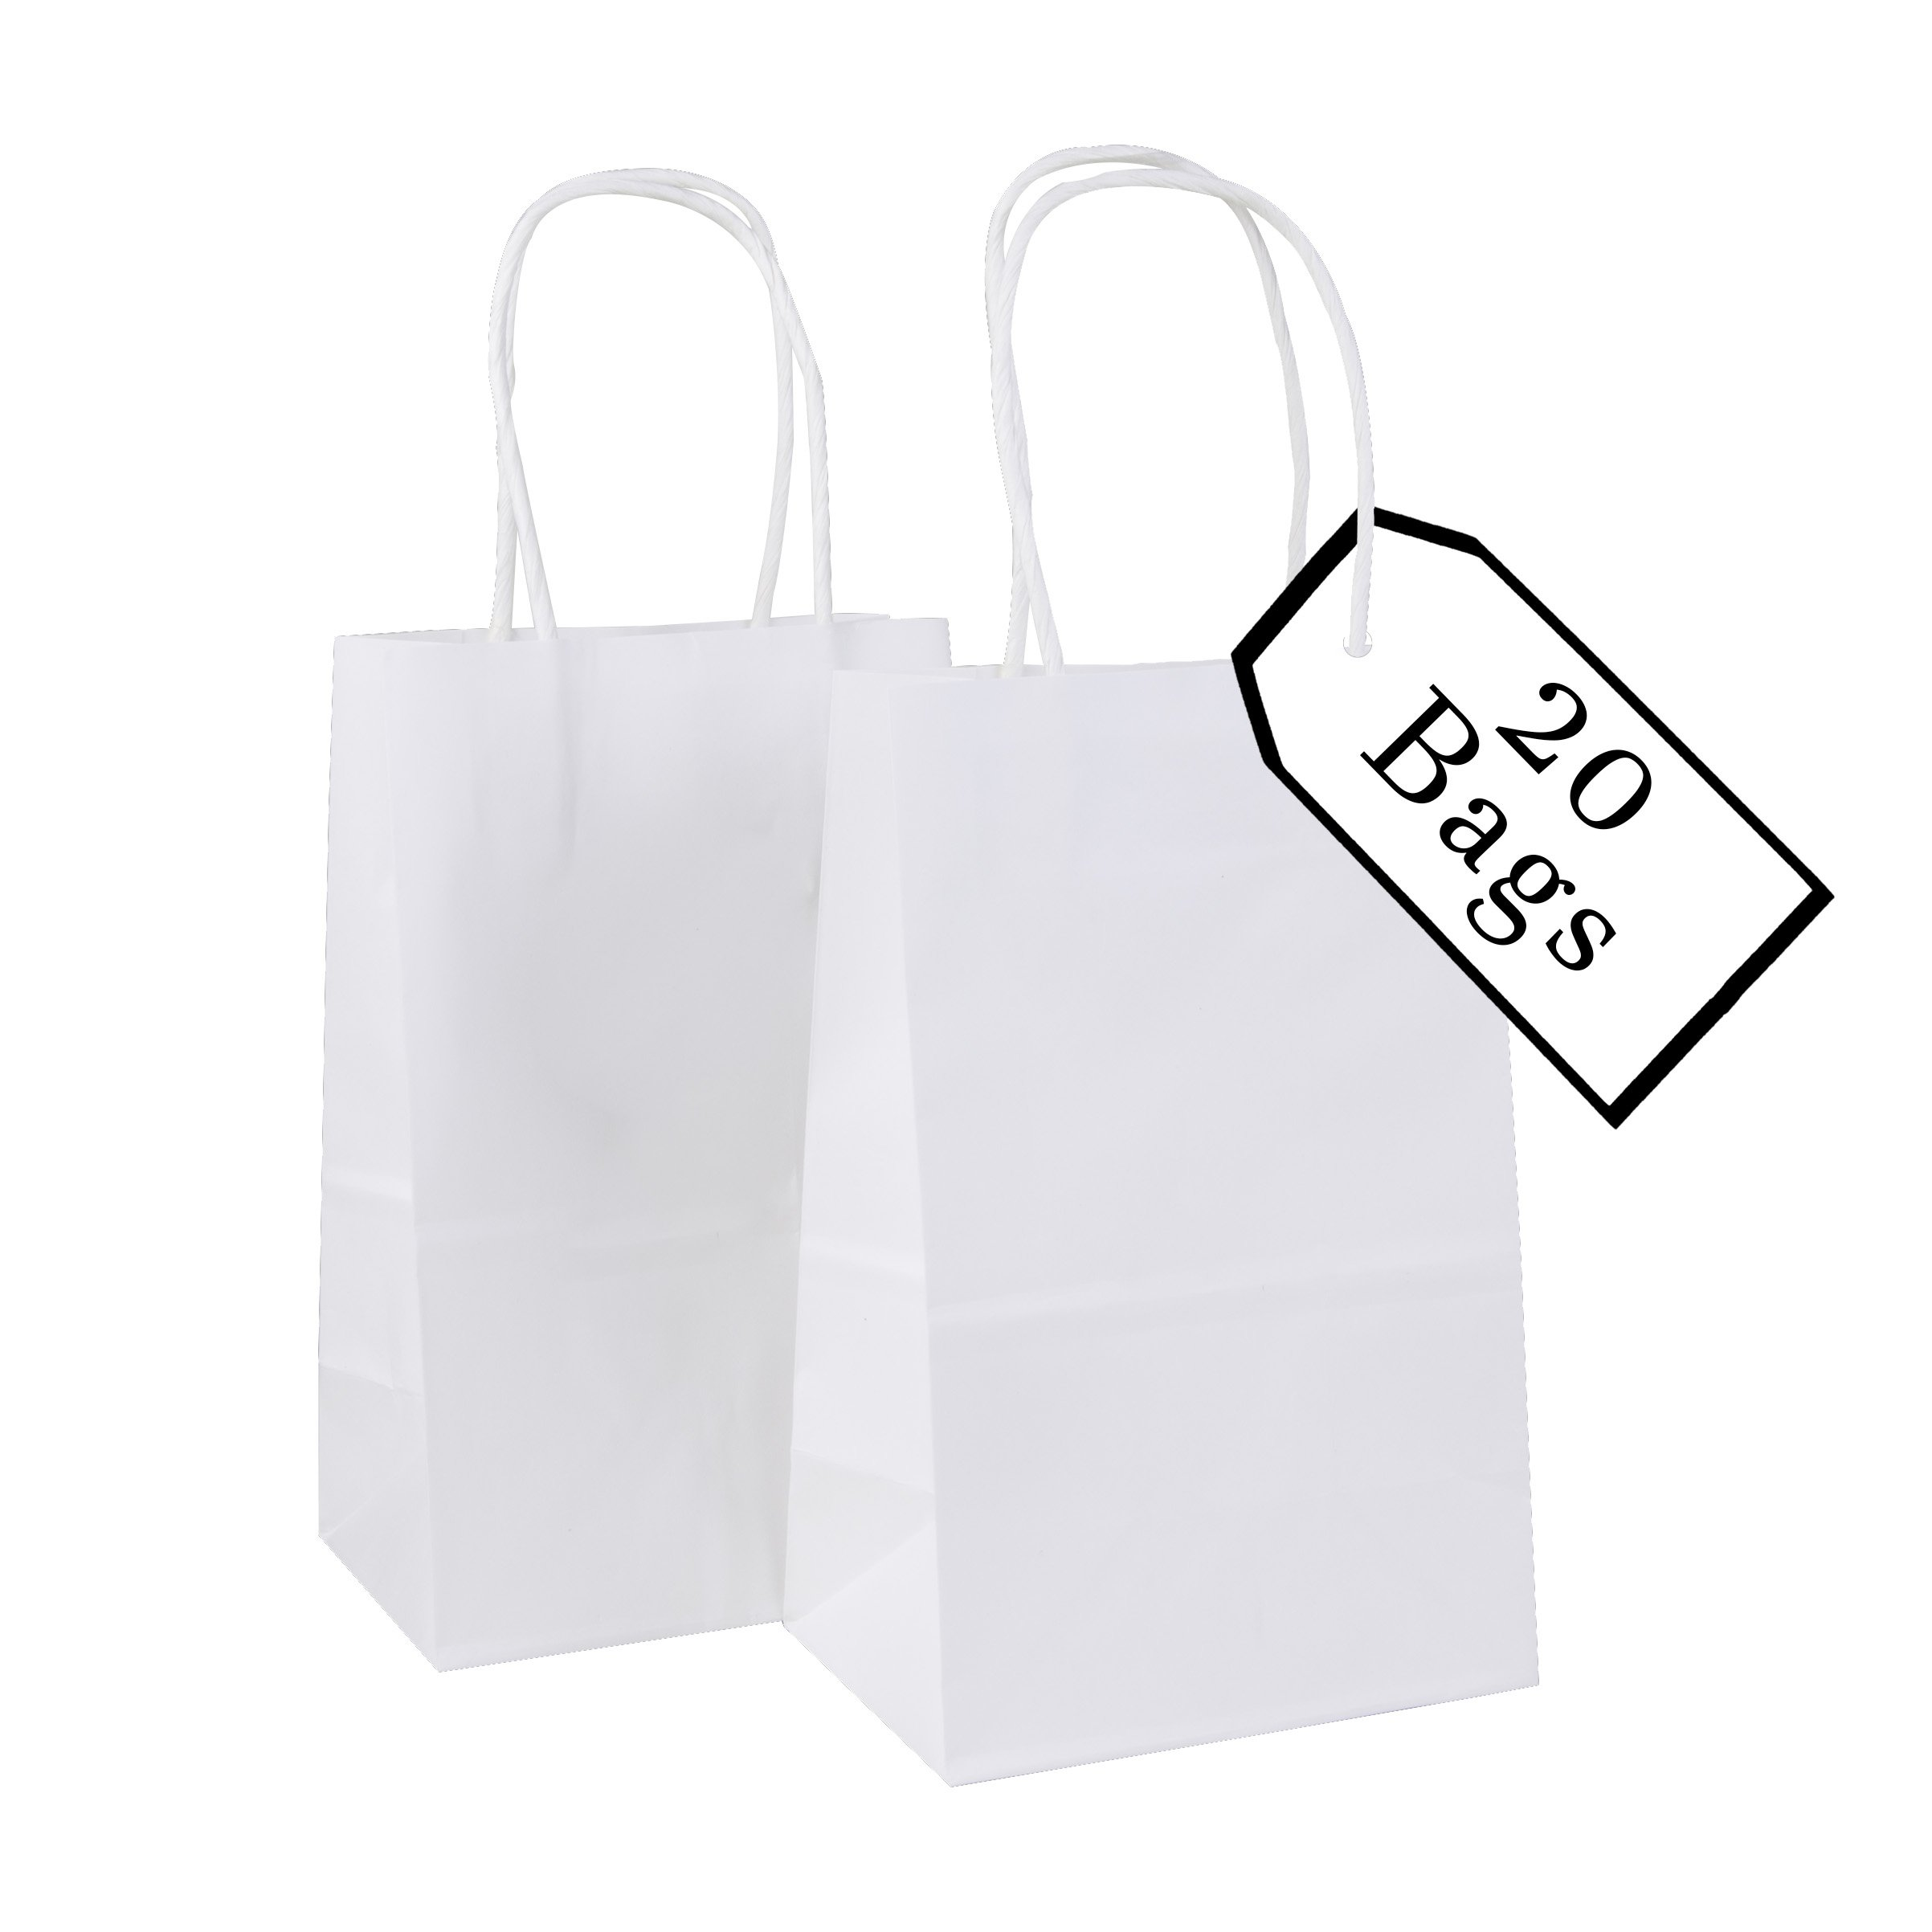 Incredible Packaging - 5.5'' x 3.25'' x 8.37'' Kraft Paper Bags with Handles for Shopping, Lunch, Retail and Merchandise. Strong and Reusable - 20 Bags Count - 80 Paper Thickness (20, White)